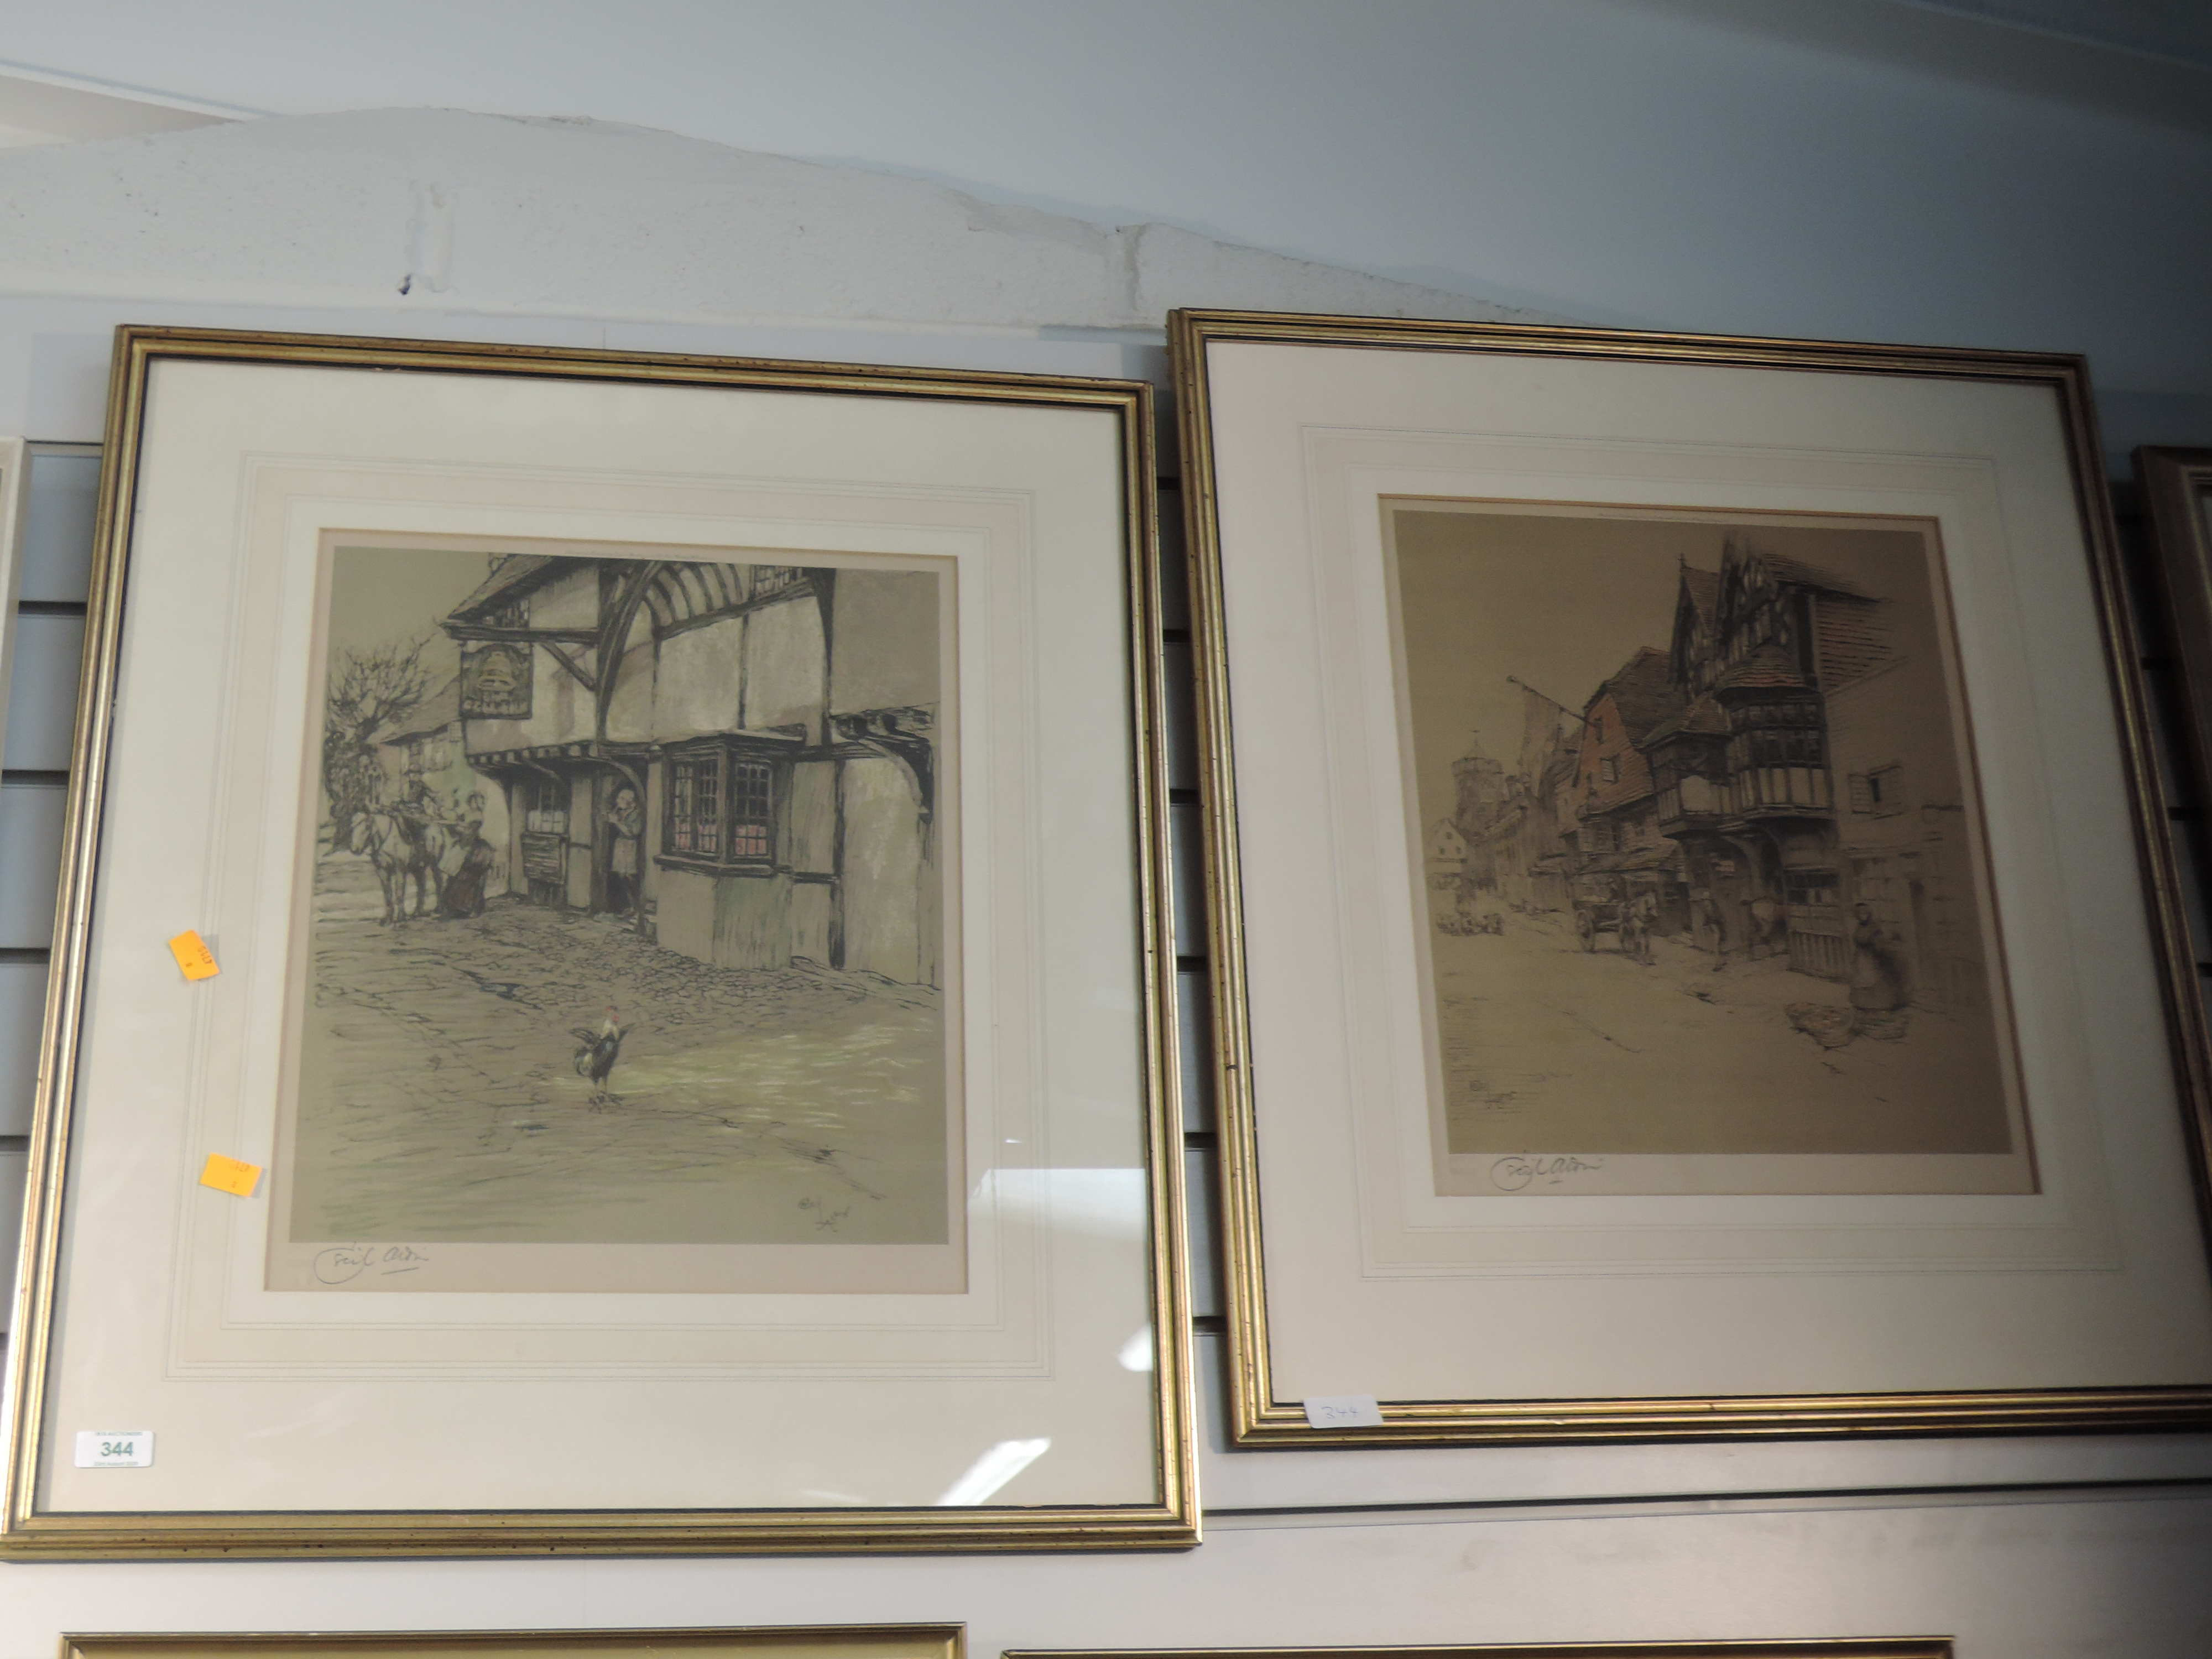 Lot 344 - Two prints, after Cecil Aldin, Old English Inns series, The Bell Inn, signed, framed and glazed 41 x